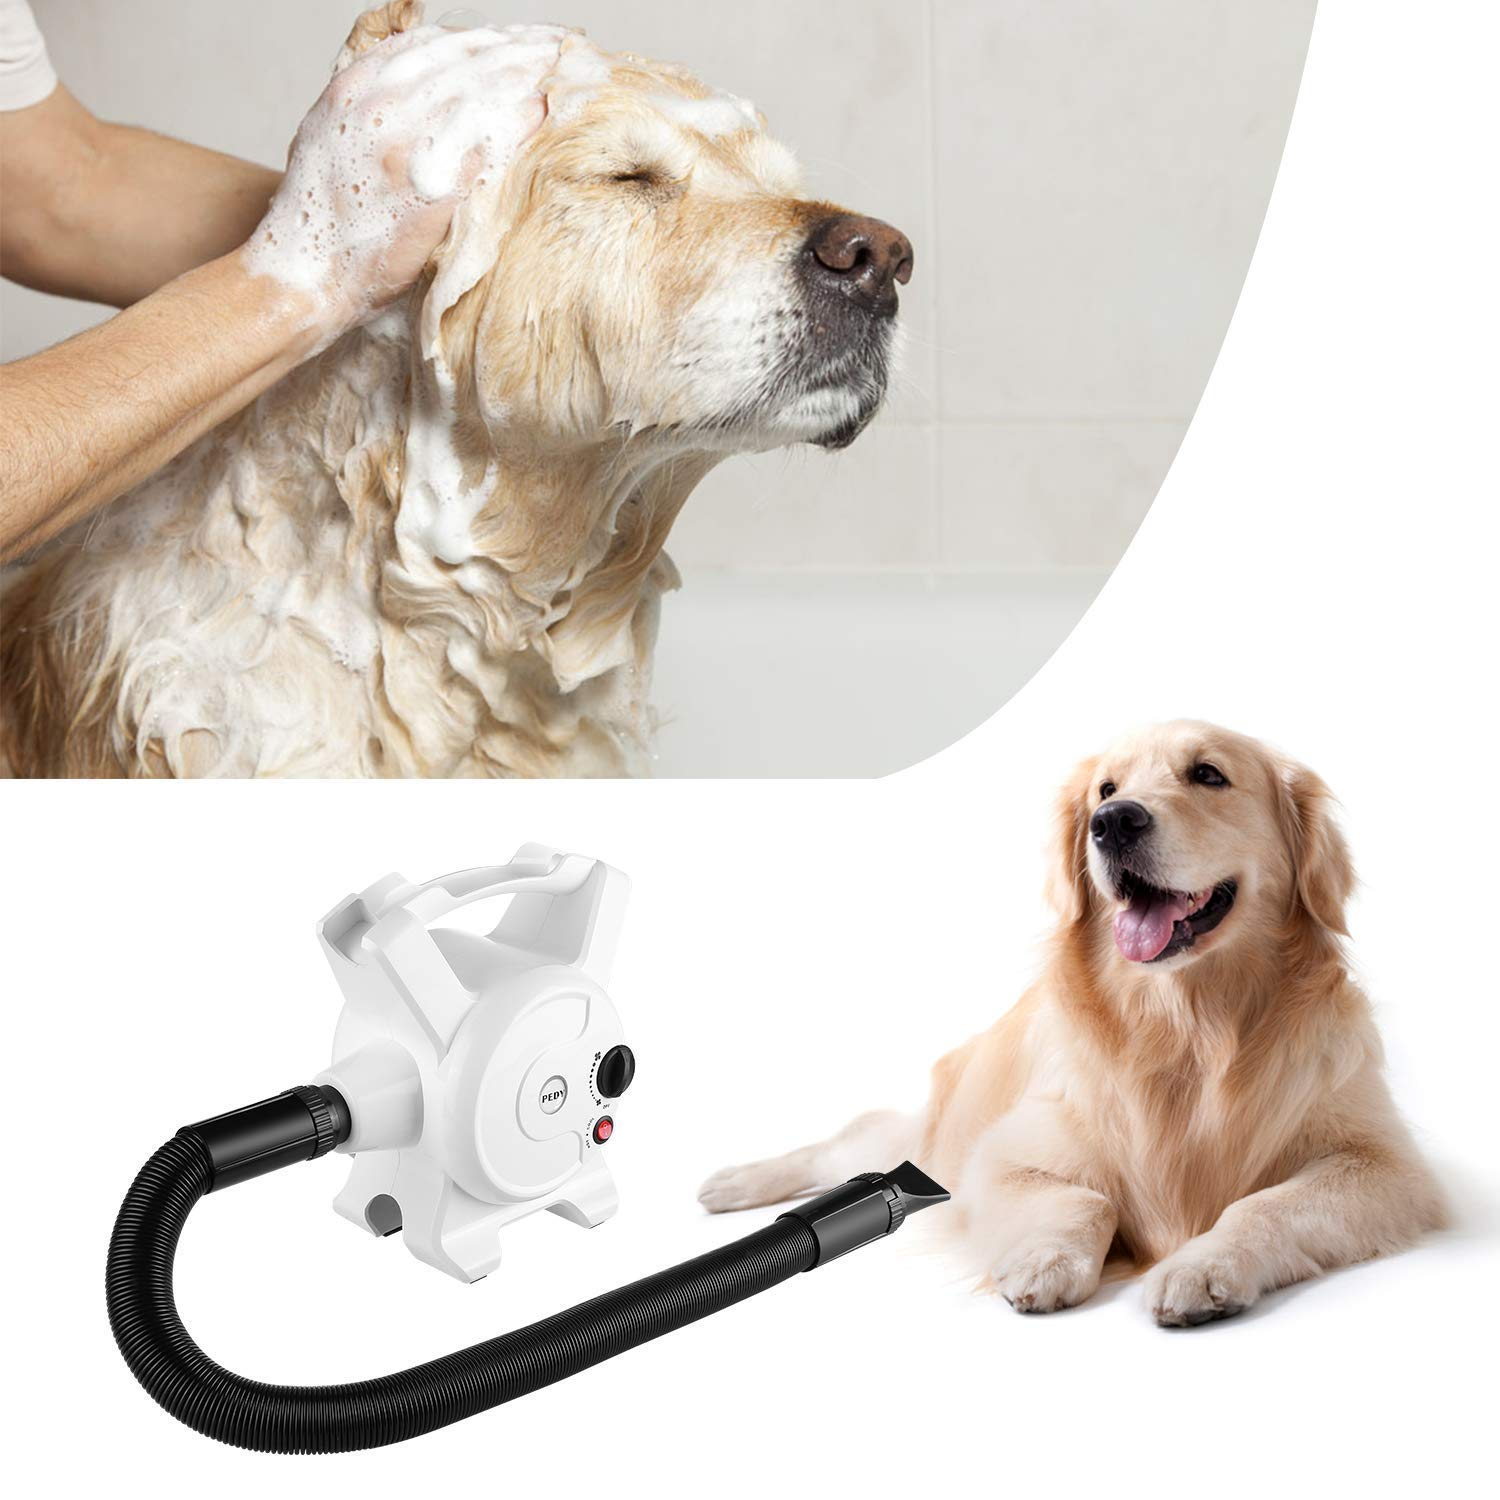 Pedy Dog Hair Dryer 3.2 HP Stepless Adjustable Speed Blow Dryers for Dogs Grooming with Heater 2400W Pet Dryer with 3 Different Nozzles by Pedy (Image #8)